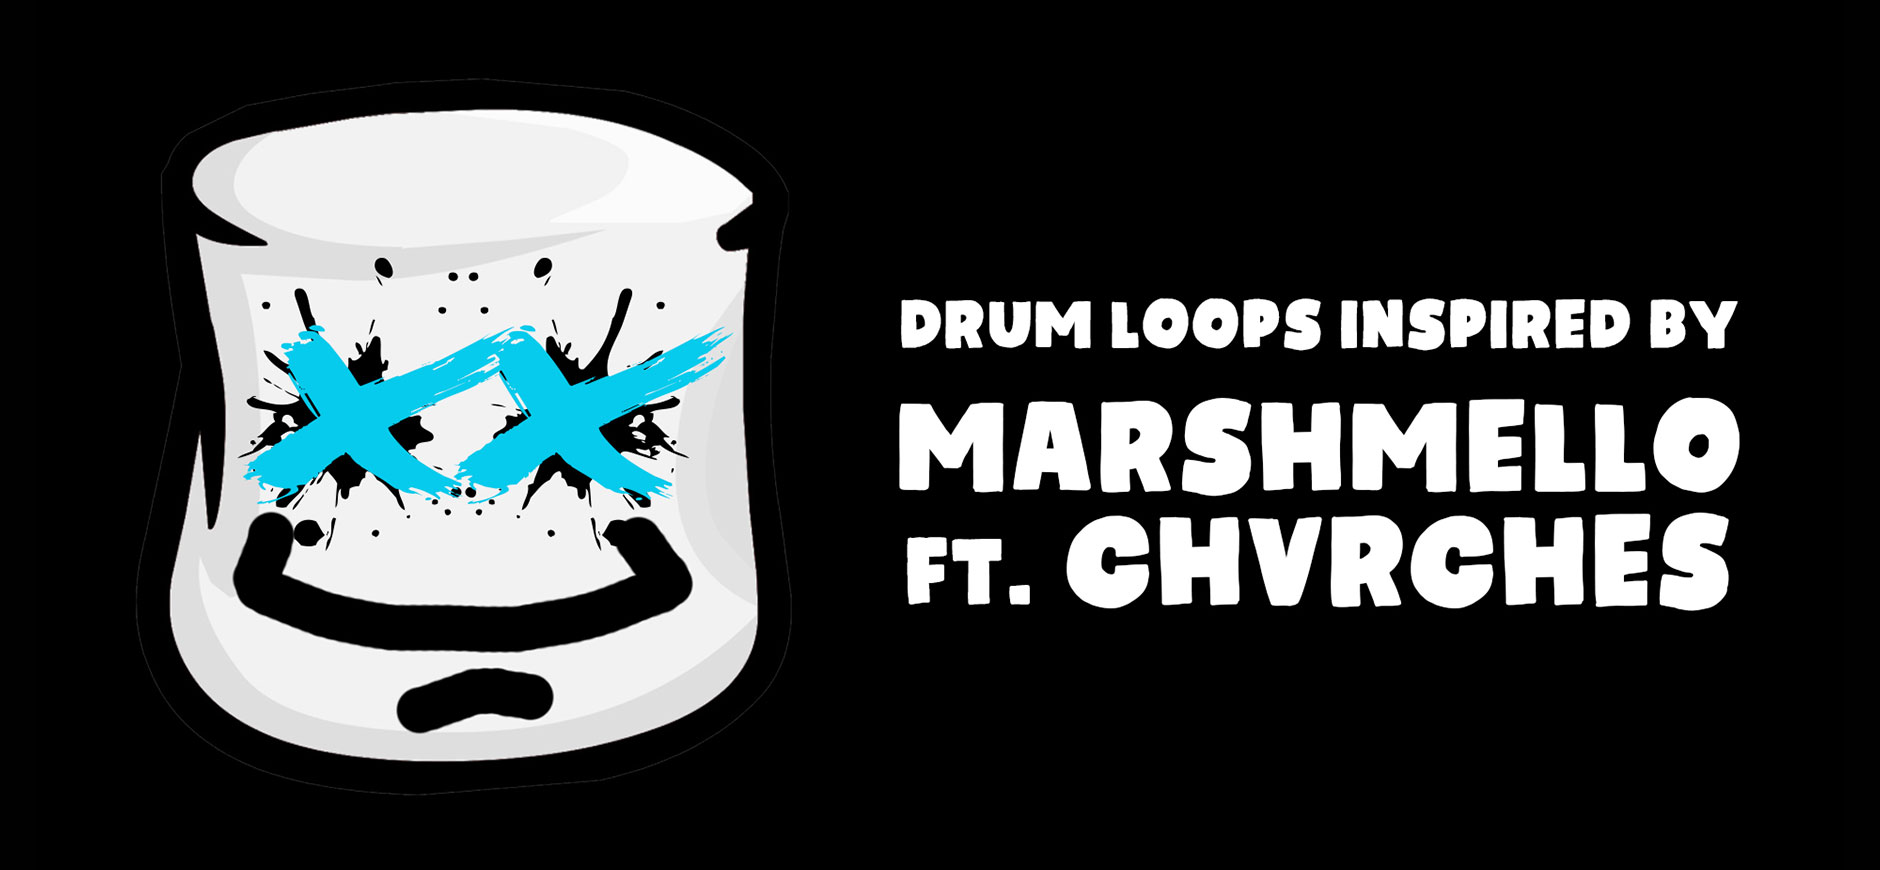 Here With Me Drum Loops Kit Inspired by Marshmello ft. CHVRCHES